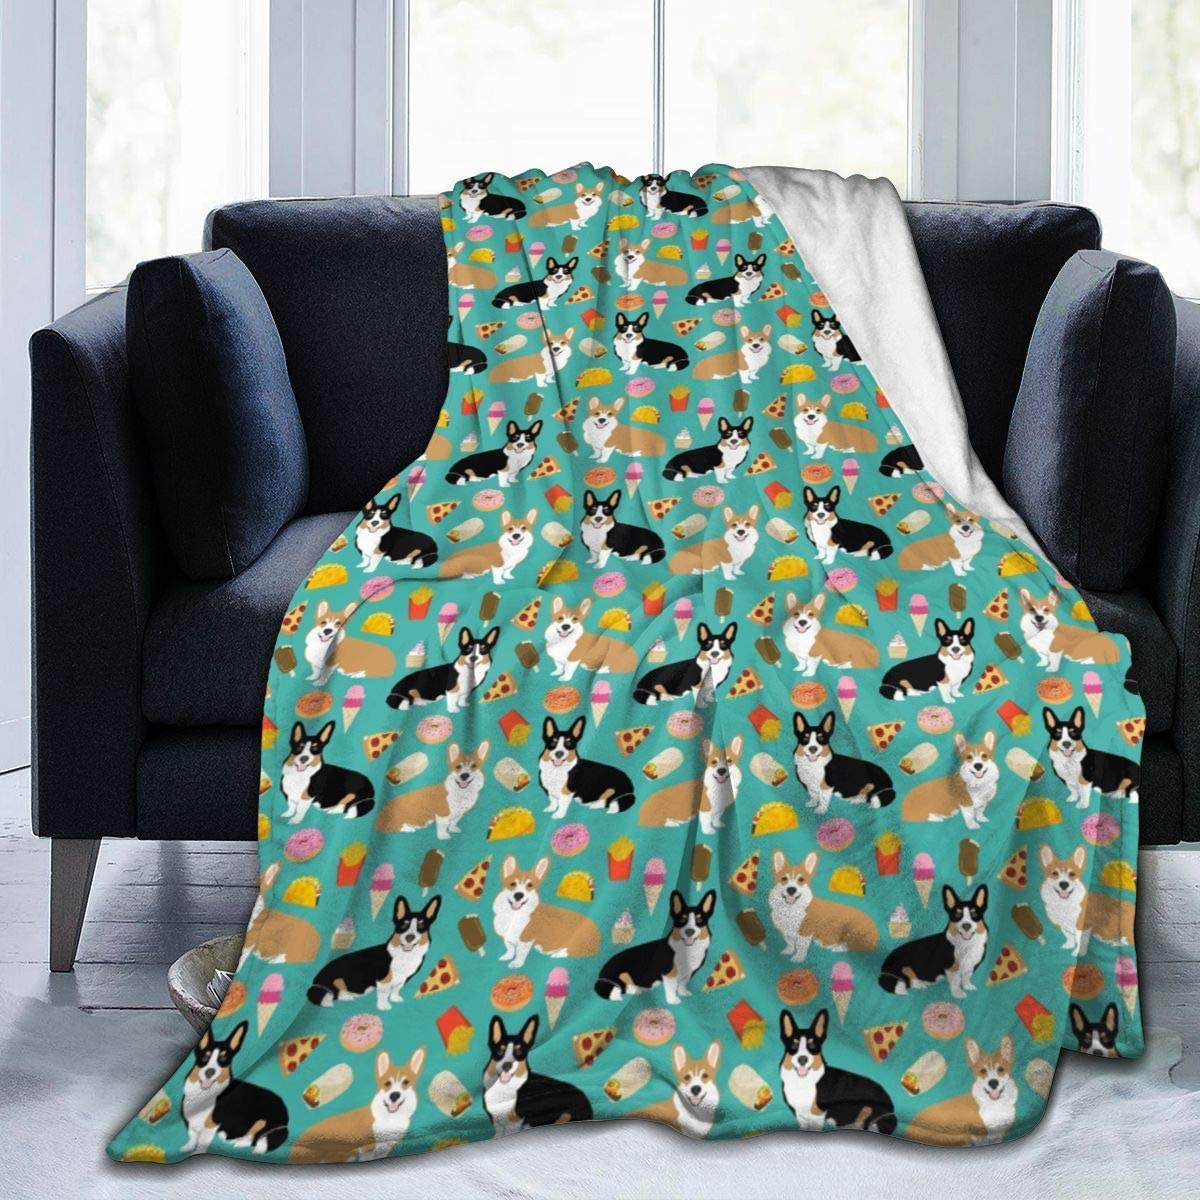 Adult Child Super Soft Blankets, Welsh Corgi Junk Food Super Warm Throw Wrap Large Throw Wearable Cuddle, Office Blankets